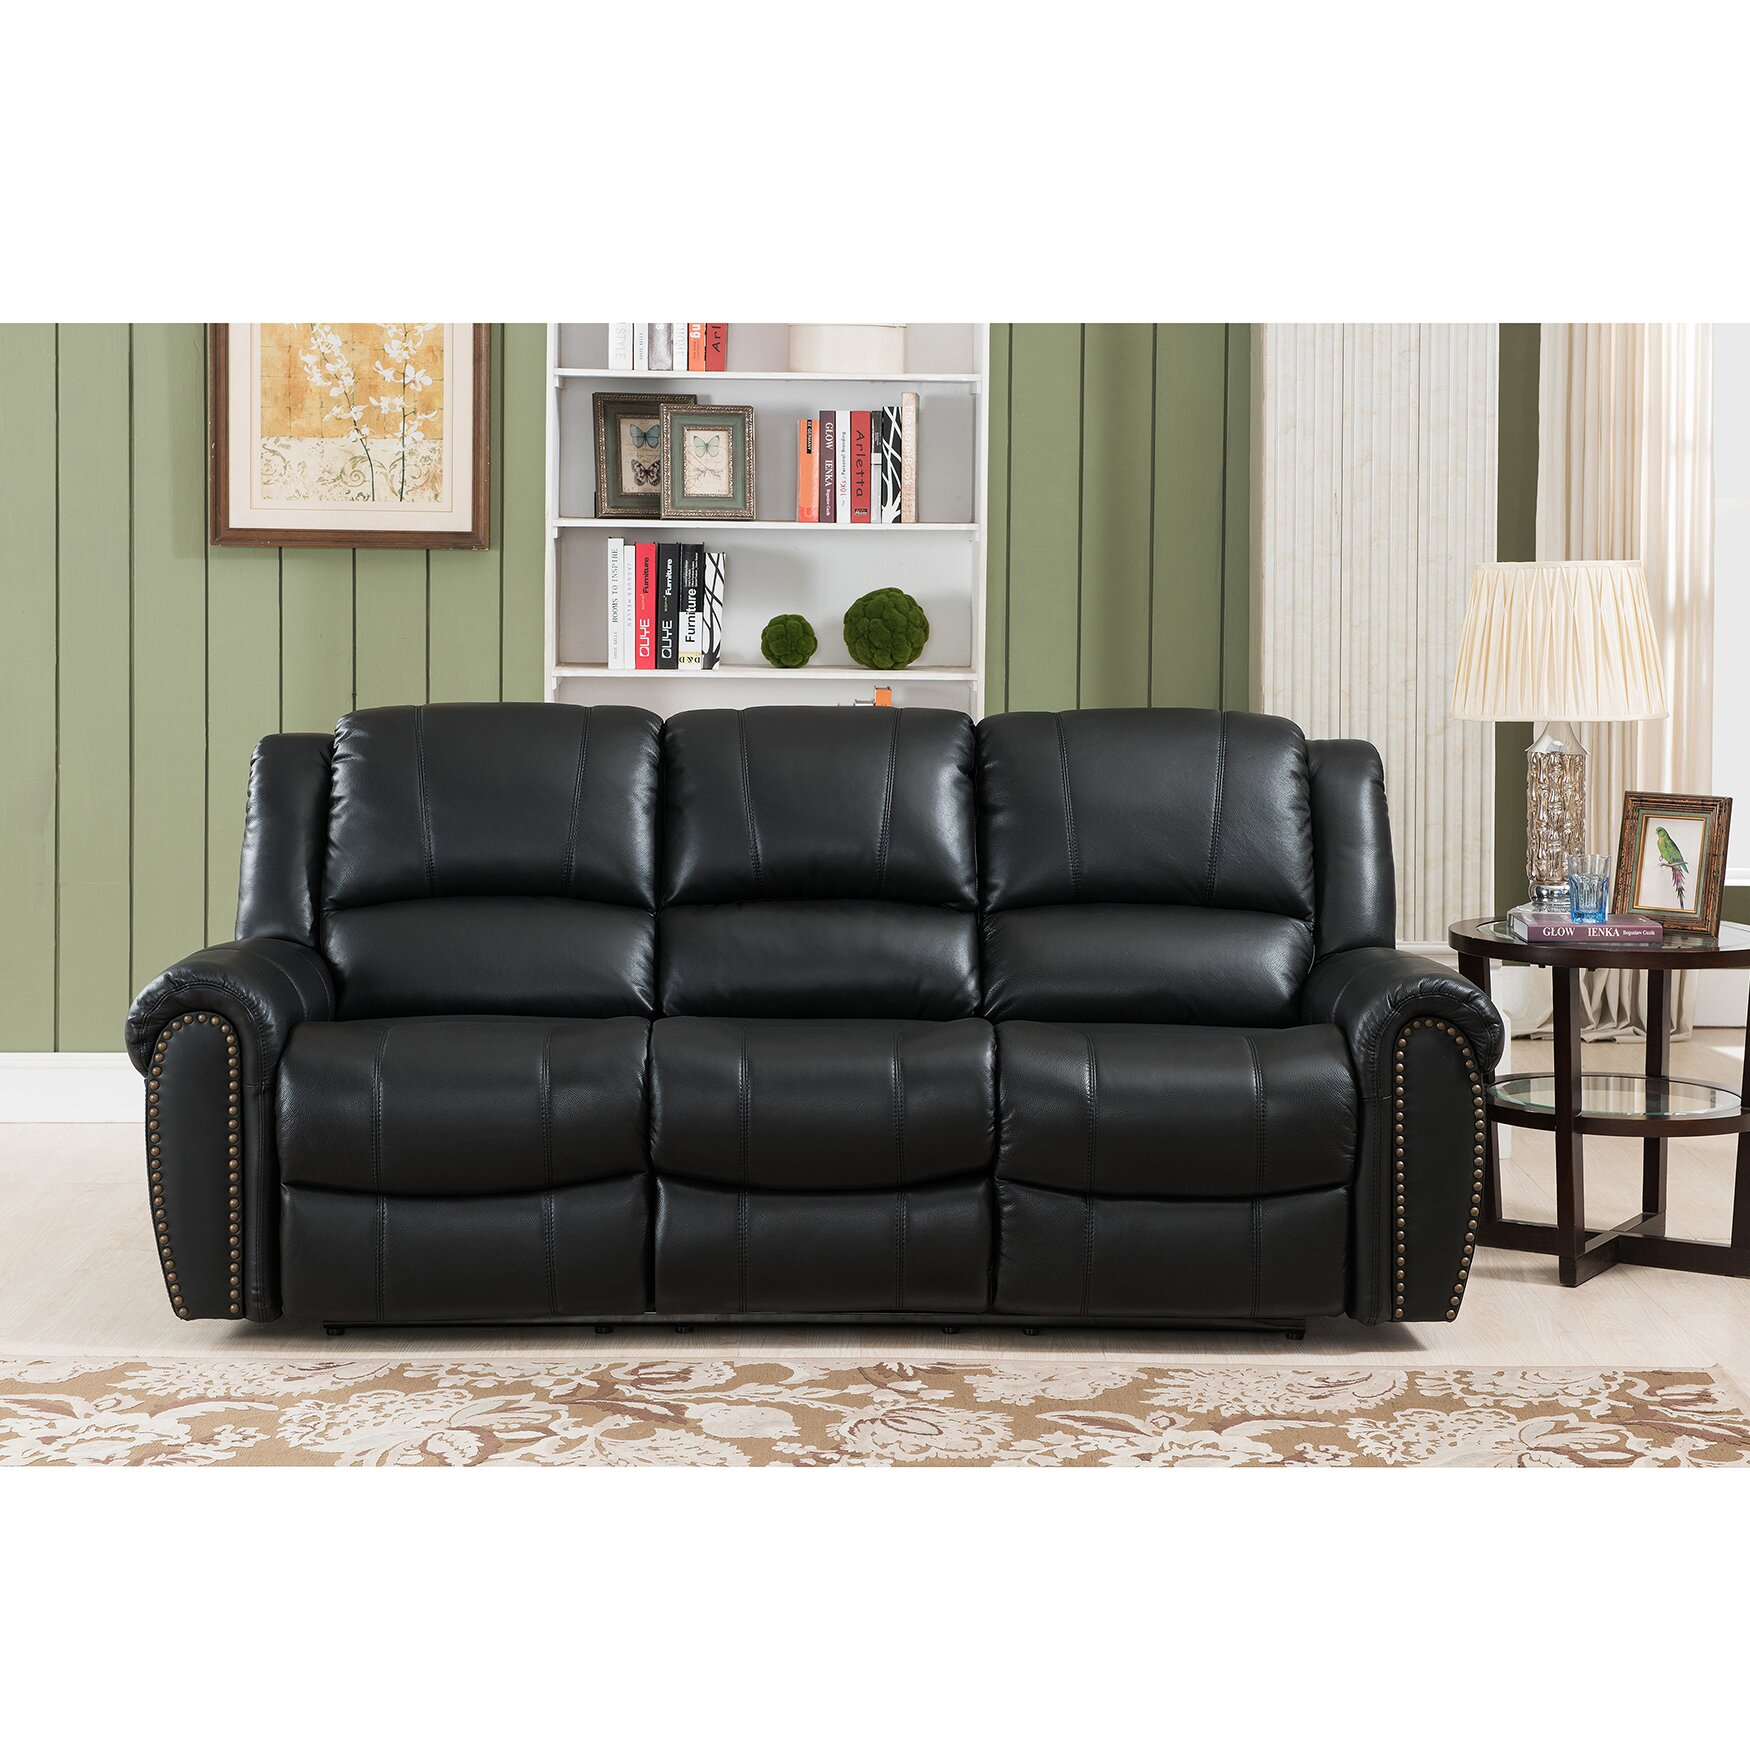 Houston 3 piece leather living room set wayfair for Living room 3 piece sets